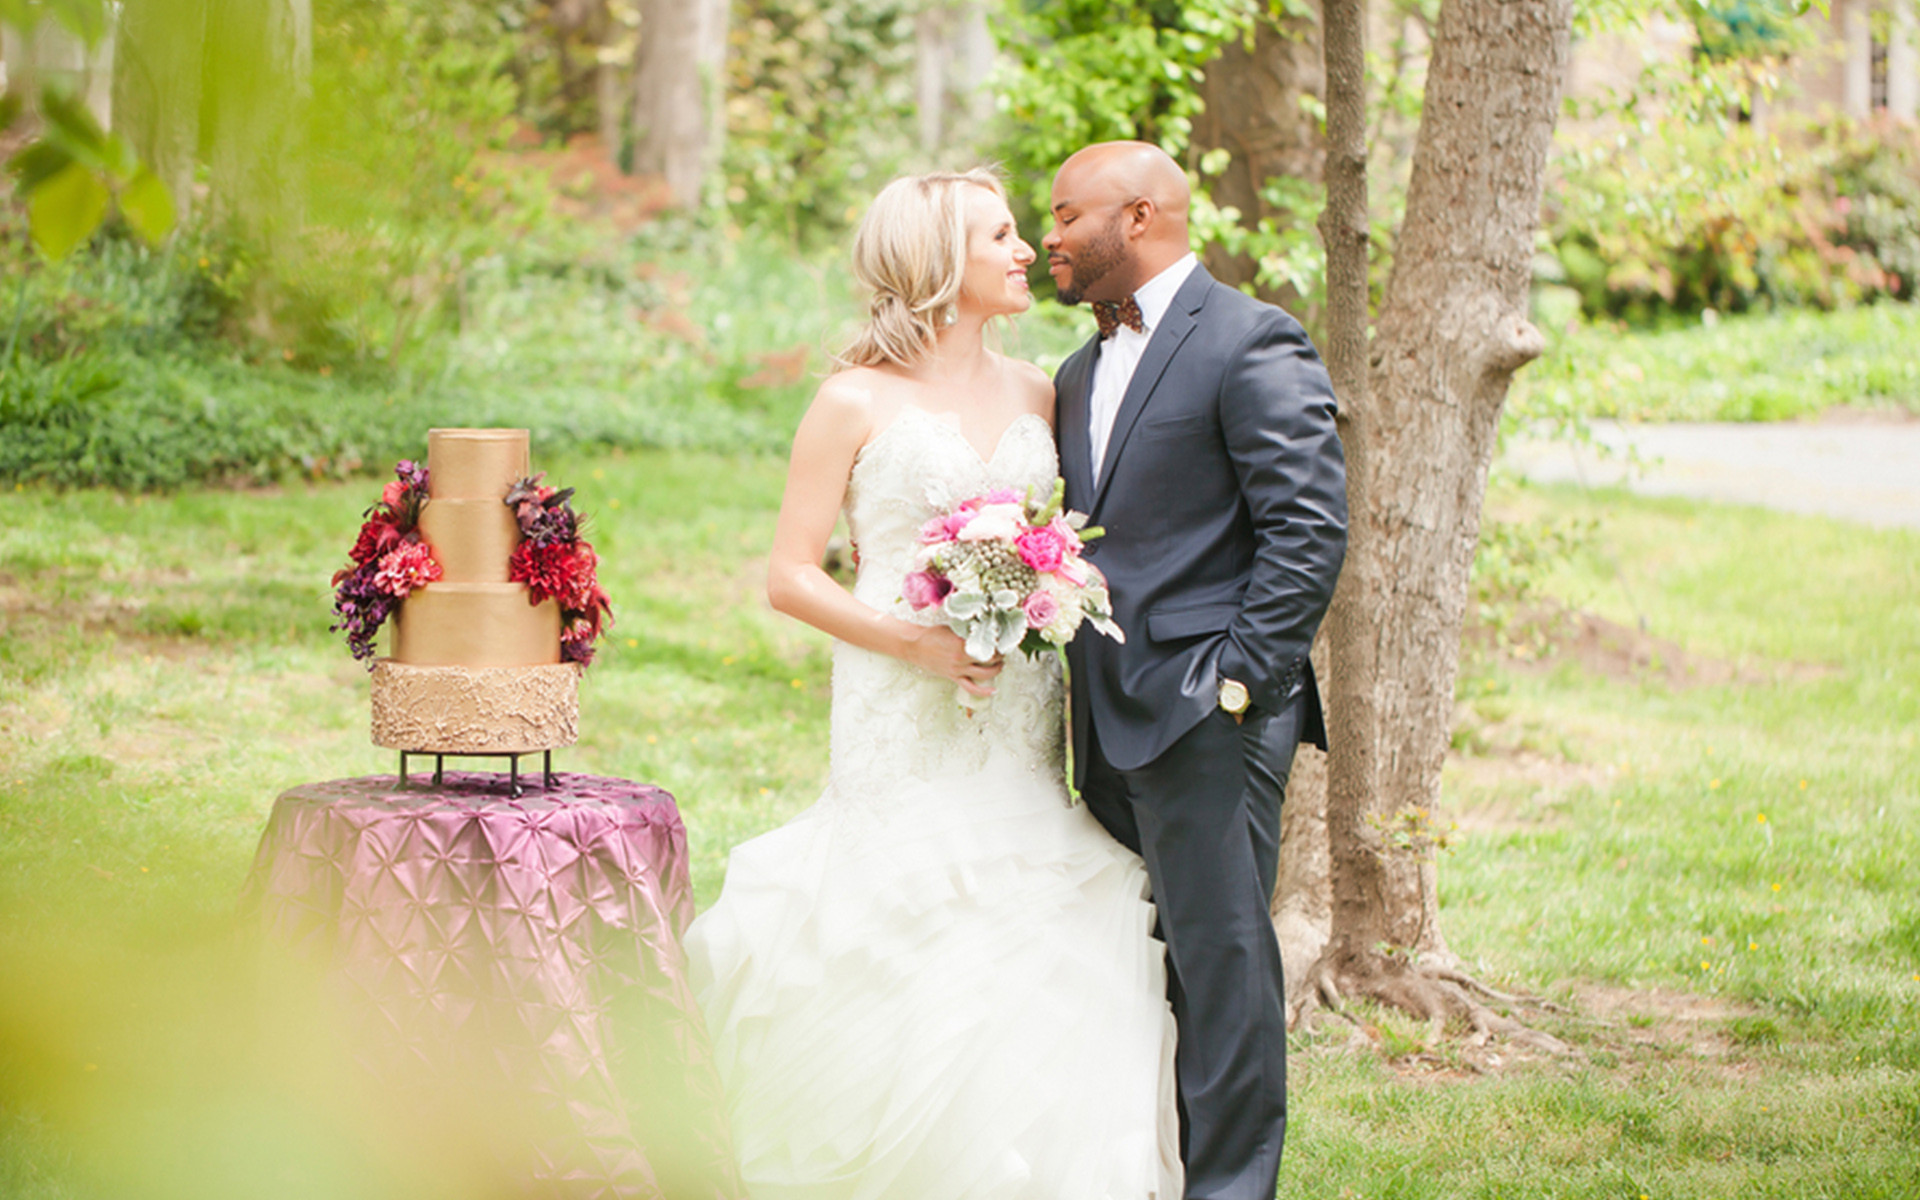 Ruby and Plum Southern Styled Wedding